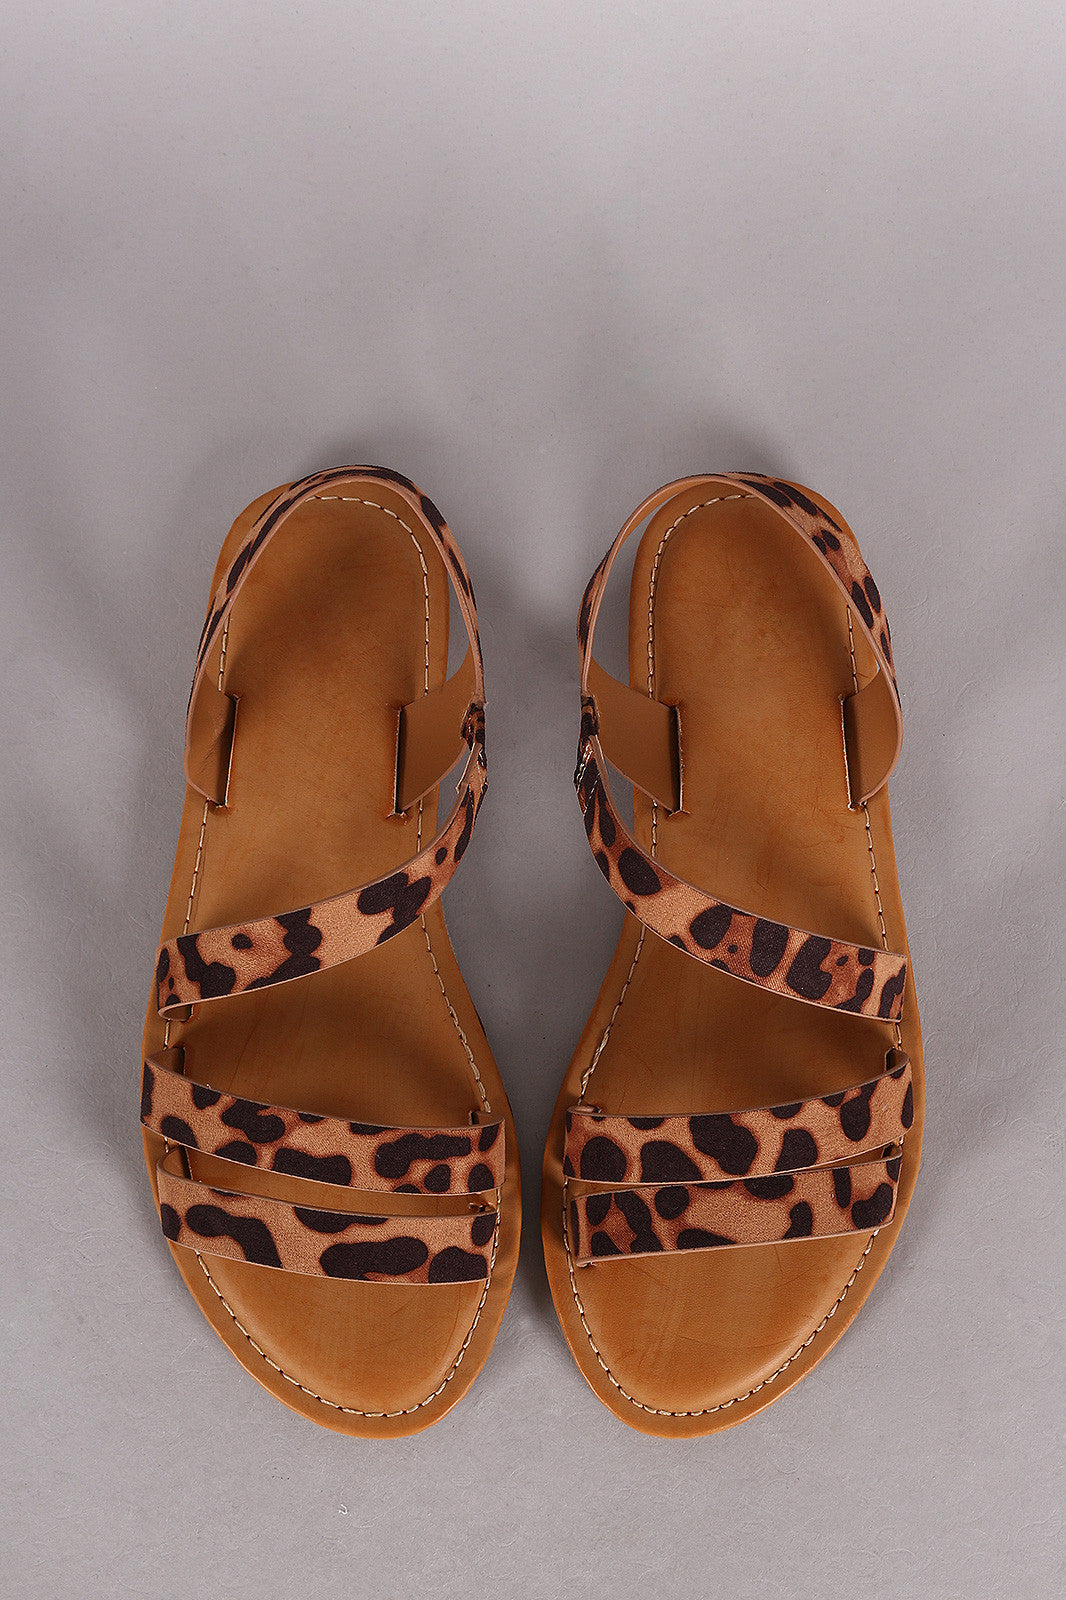 Bamboo Leopard Strappy Asymmetrical Flat Sandal - Thick 'N' Curvy Shop - 1